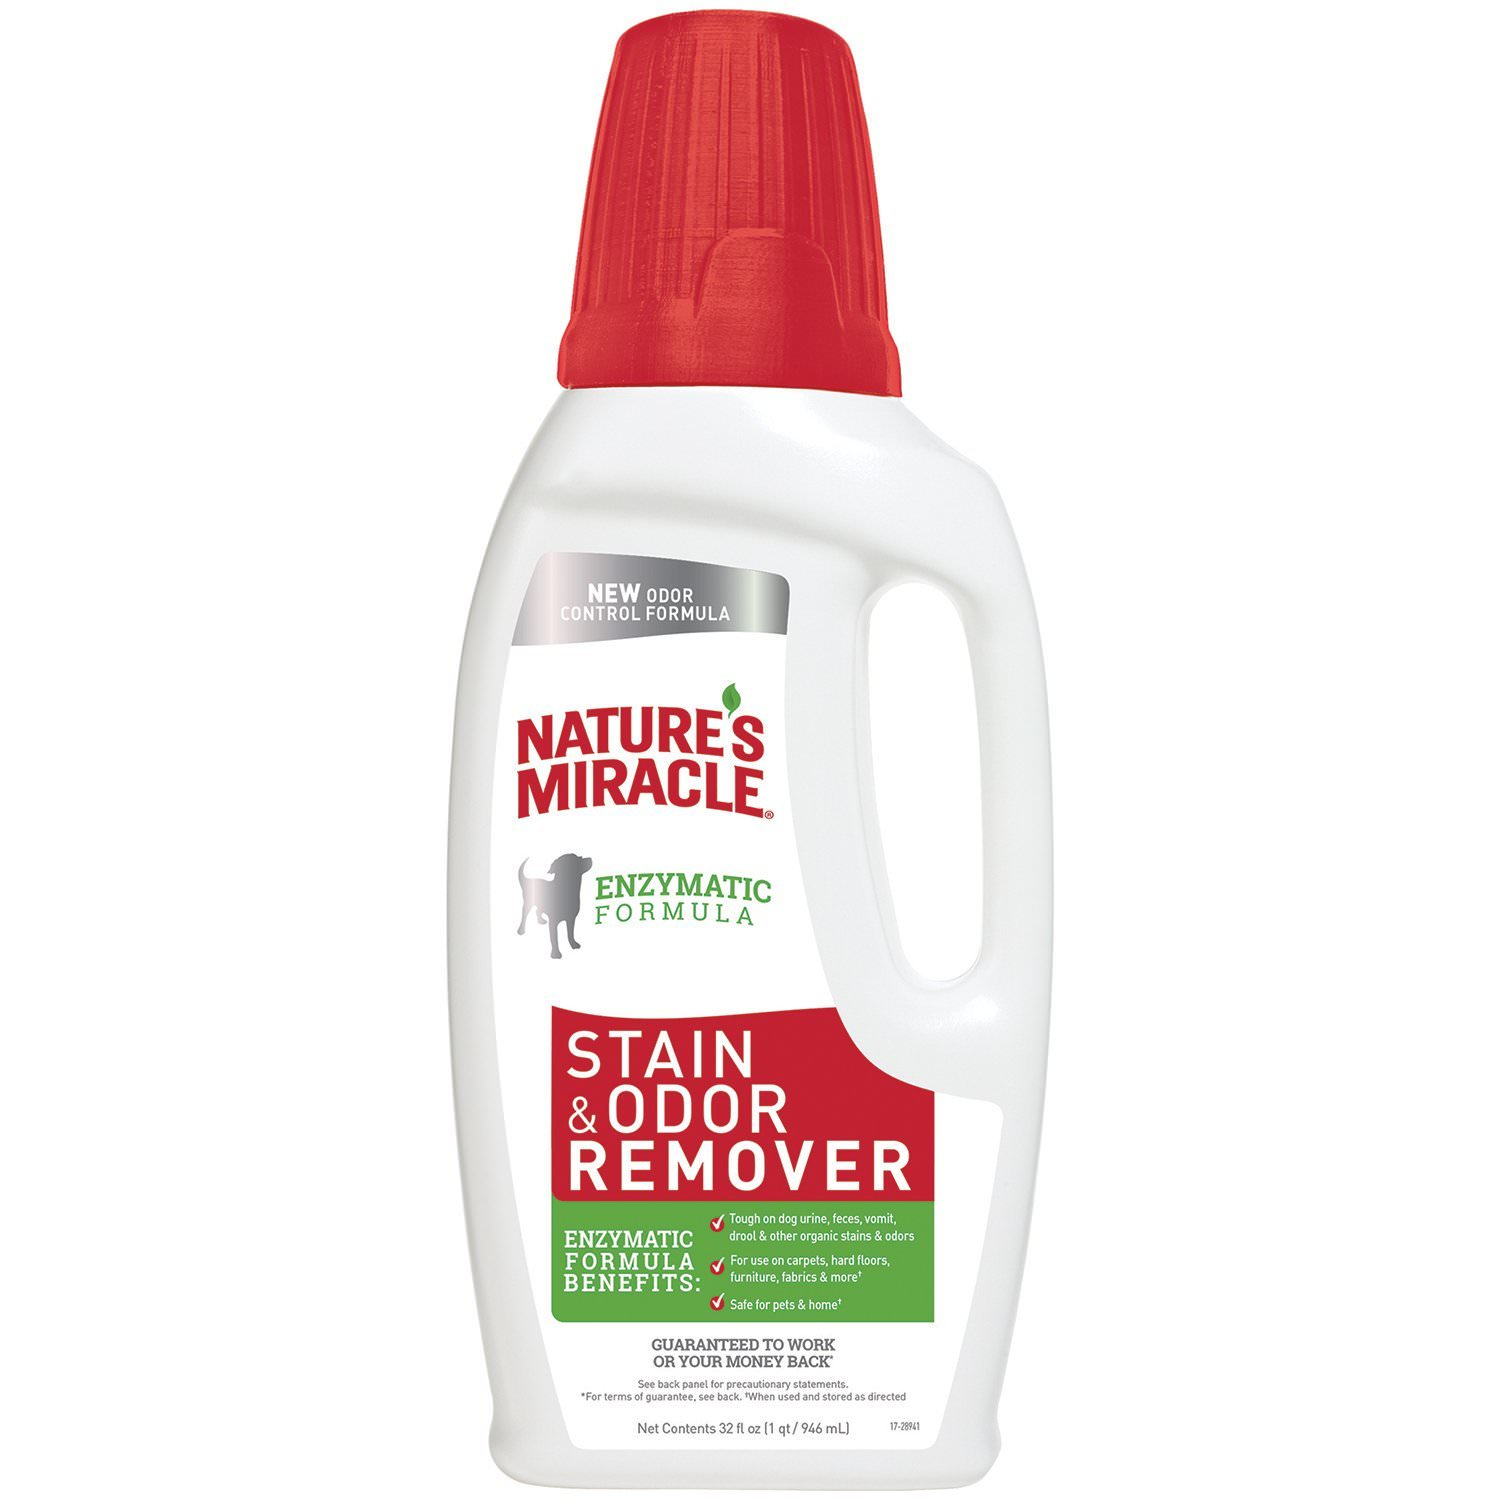 Nature's Miracle Enzymatic Stain and Odor Remover for Dogs, 32oz